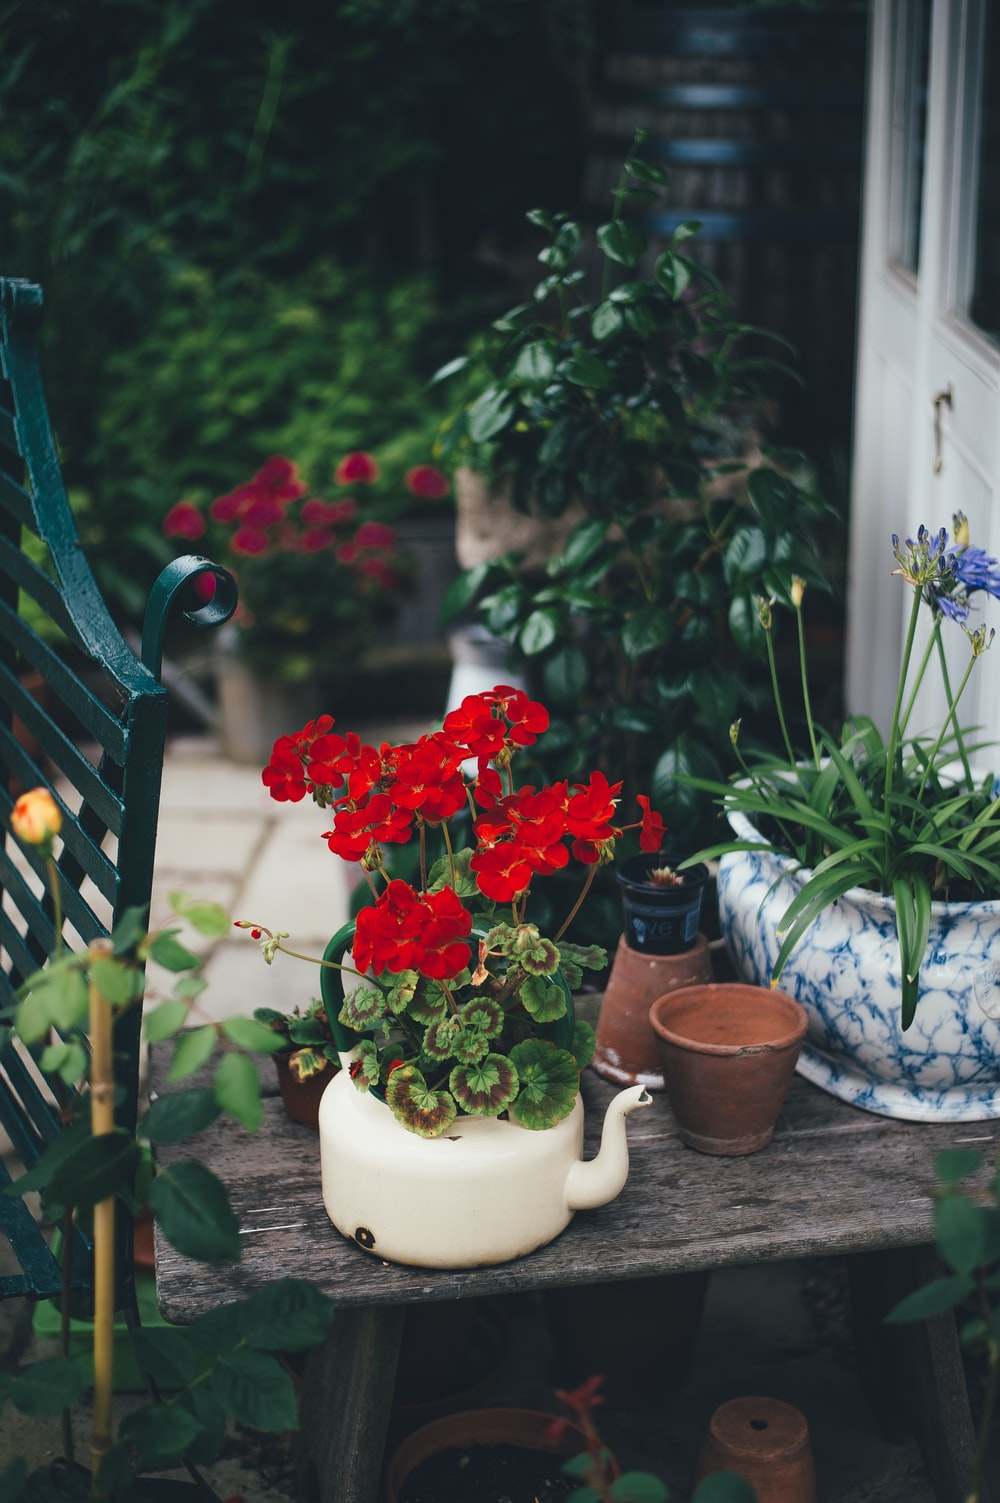 red flower on pot surrounded by plants